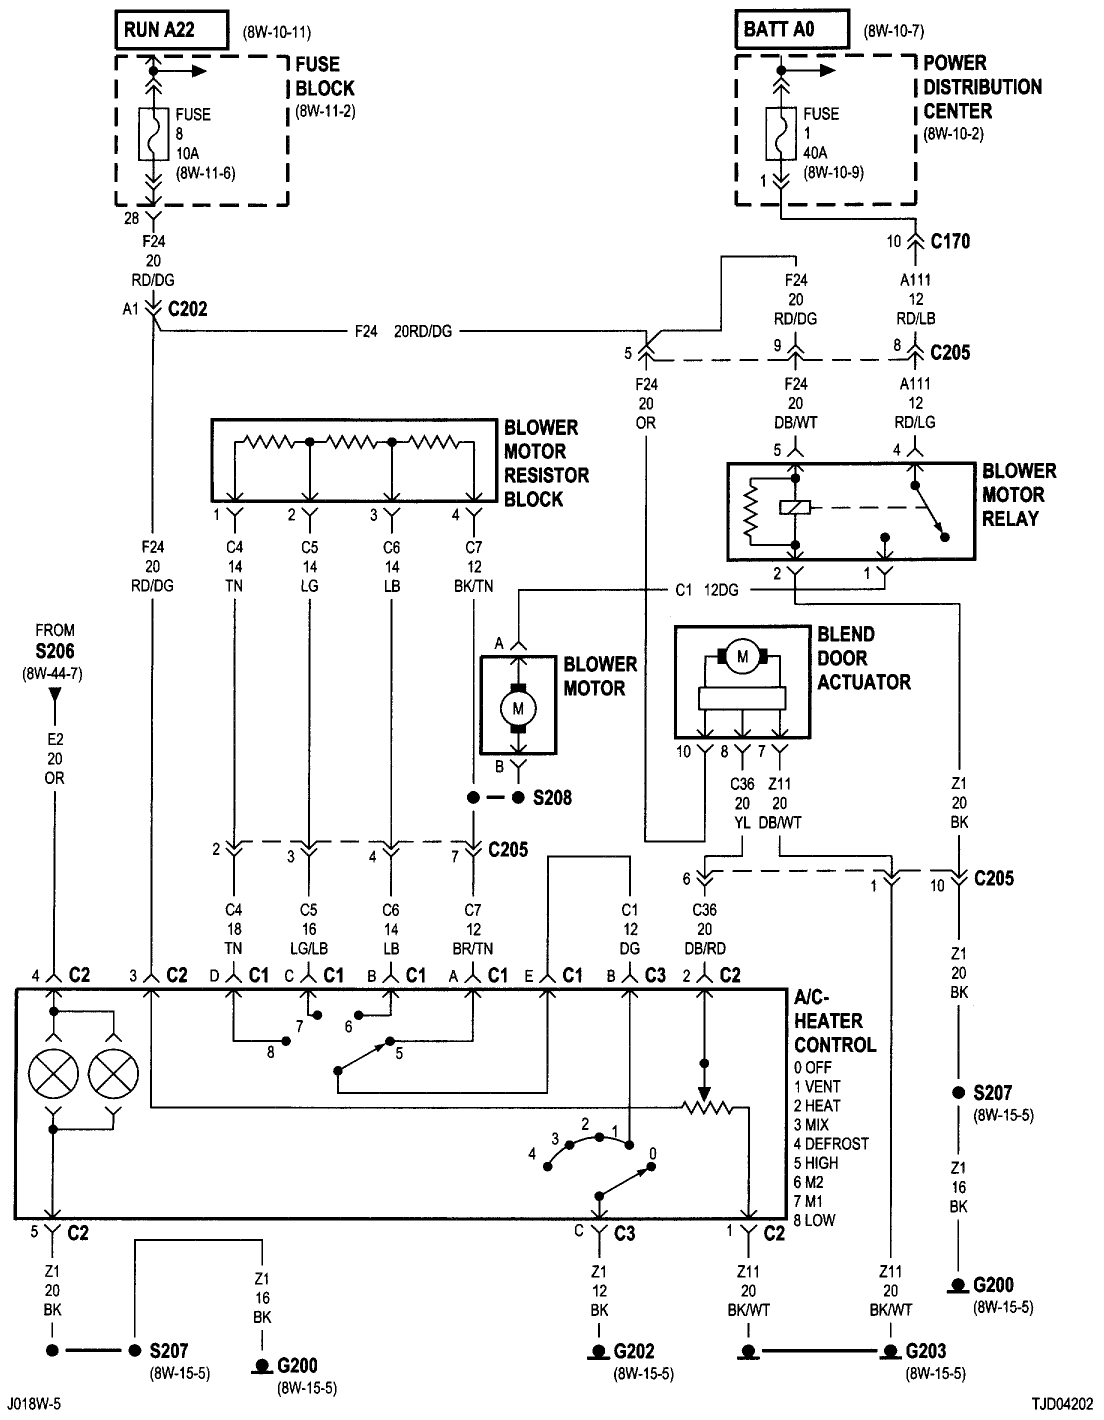 jeep liberty fuse diagram · jeep liberty wiring schematic